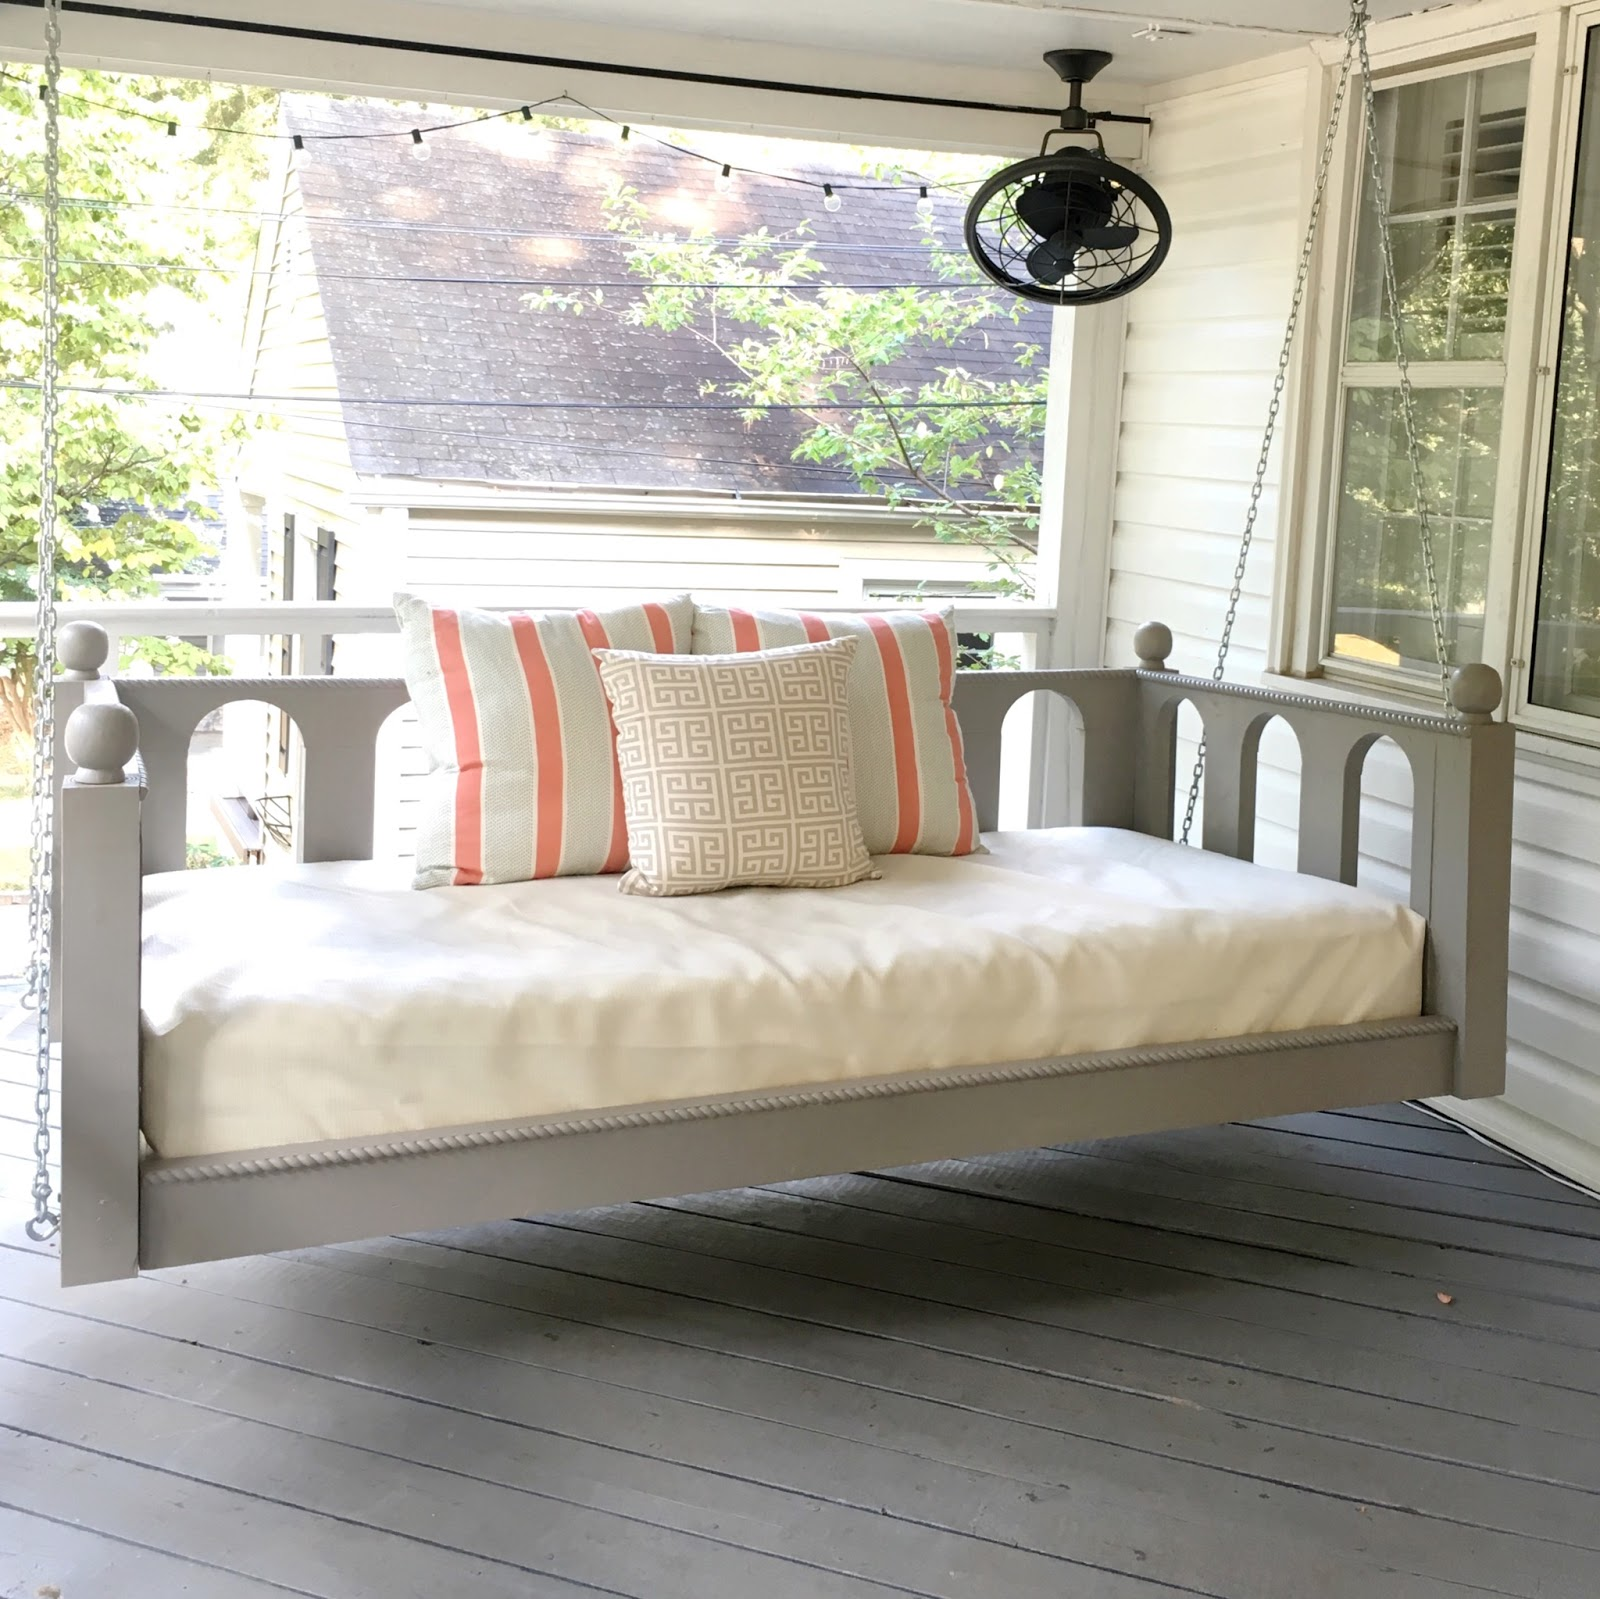 porn-site-swinging-porch-bed-young